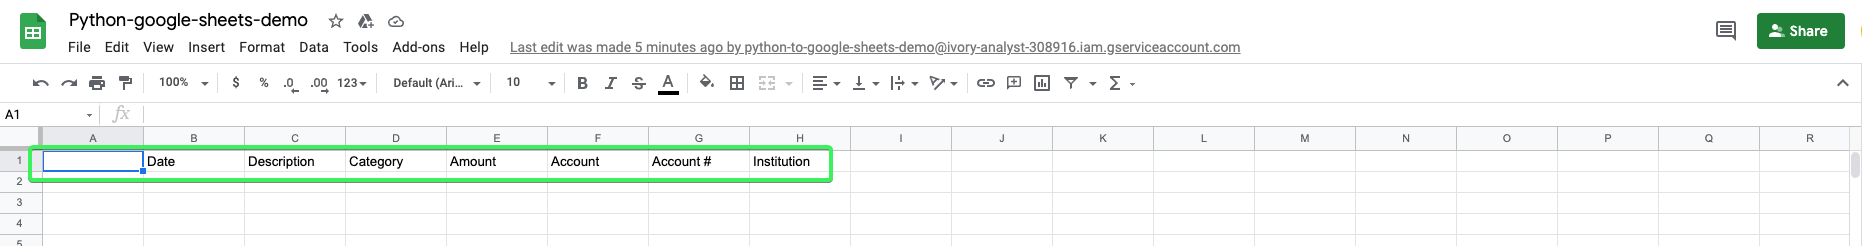 Data transferred from one spreadsheet into another using Python